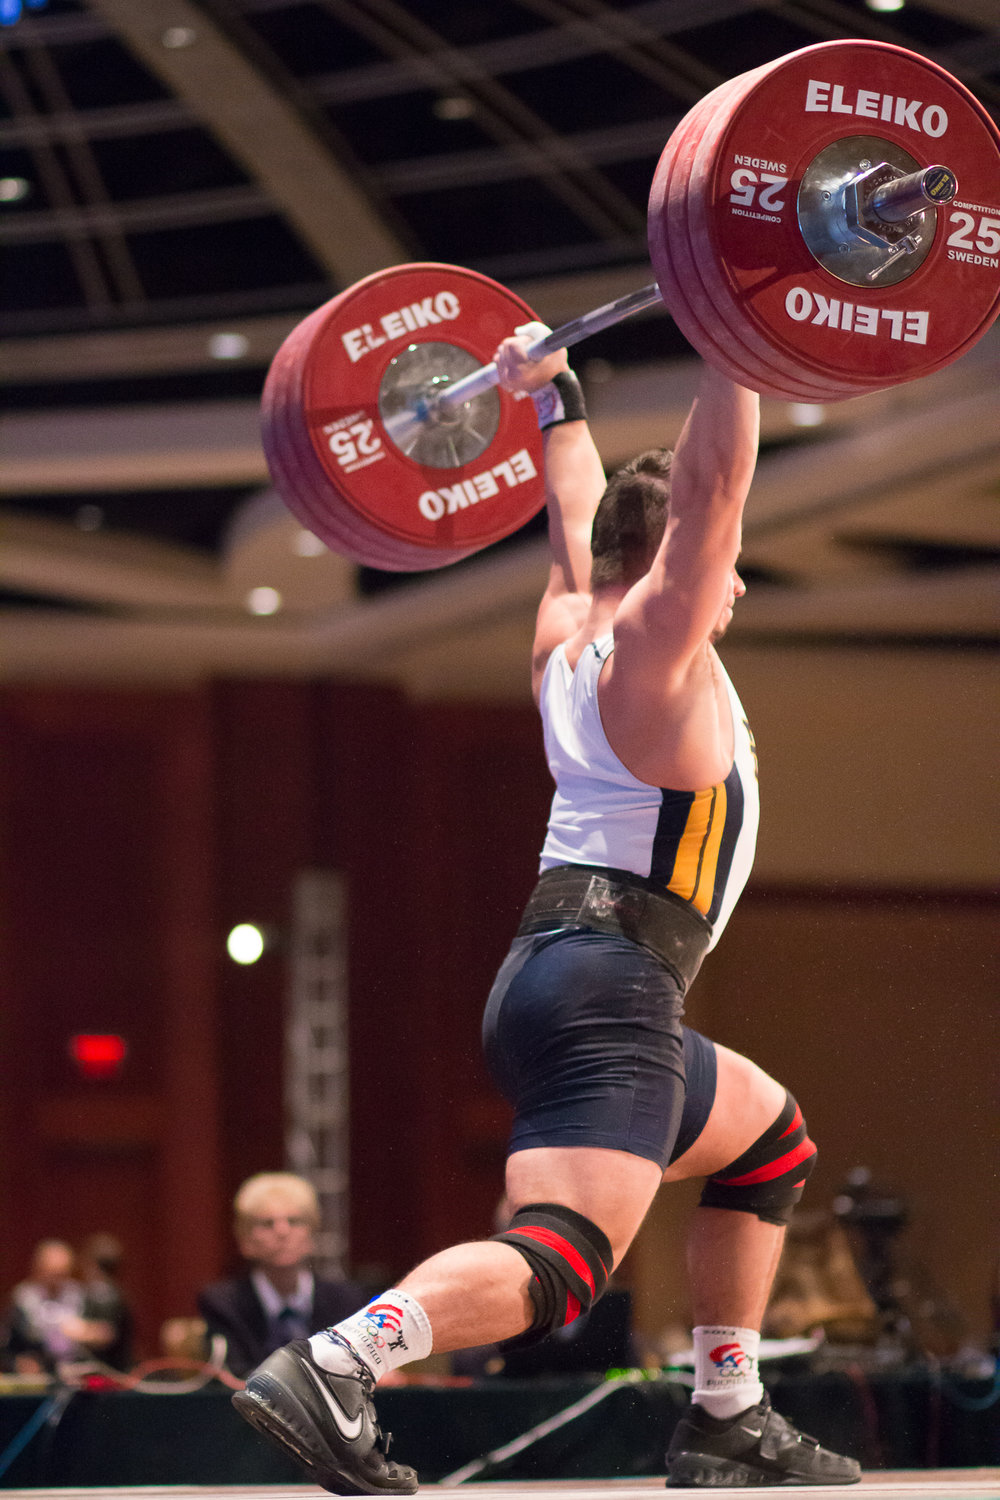 session-a-favorites-american-open-2016-weightlifting-photography (33 of 38).jpg